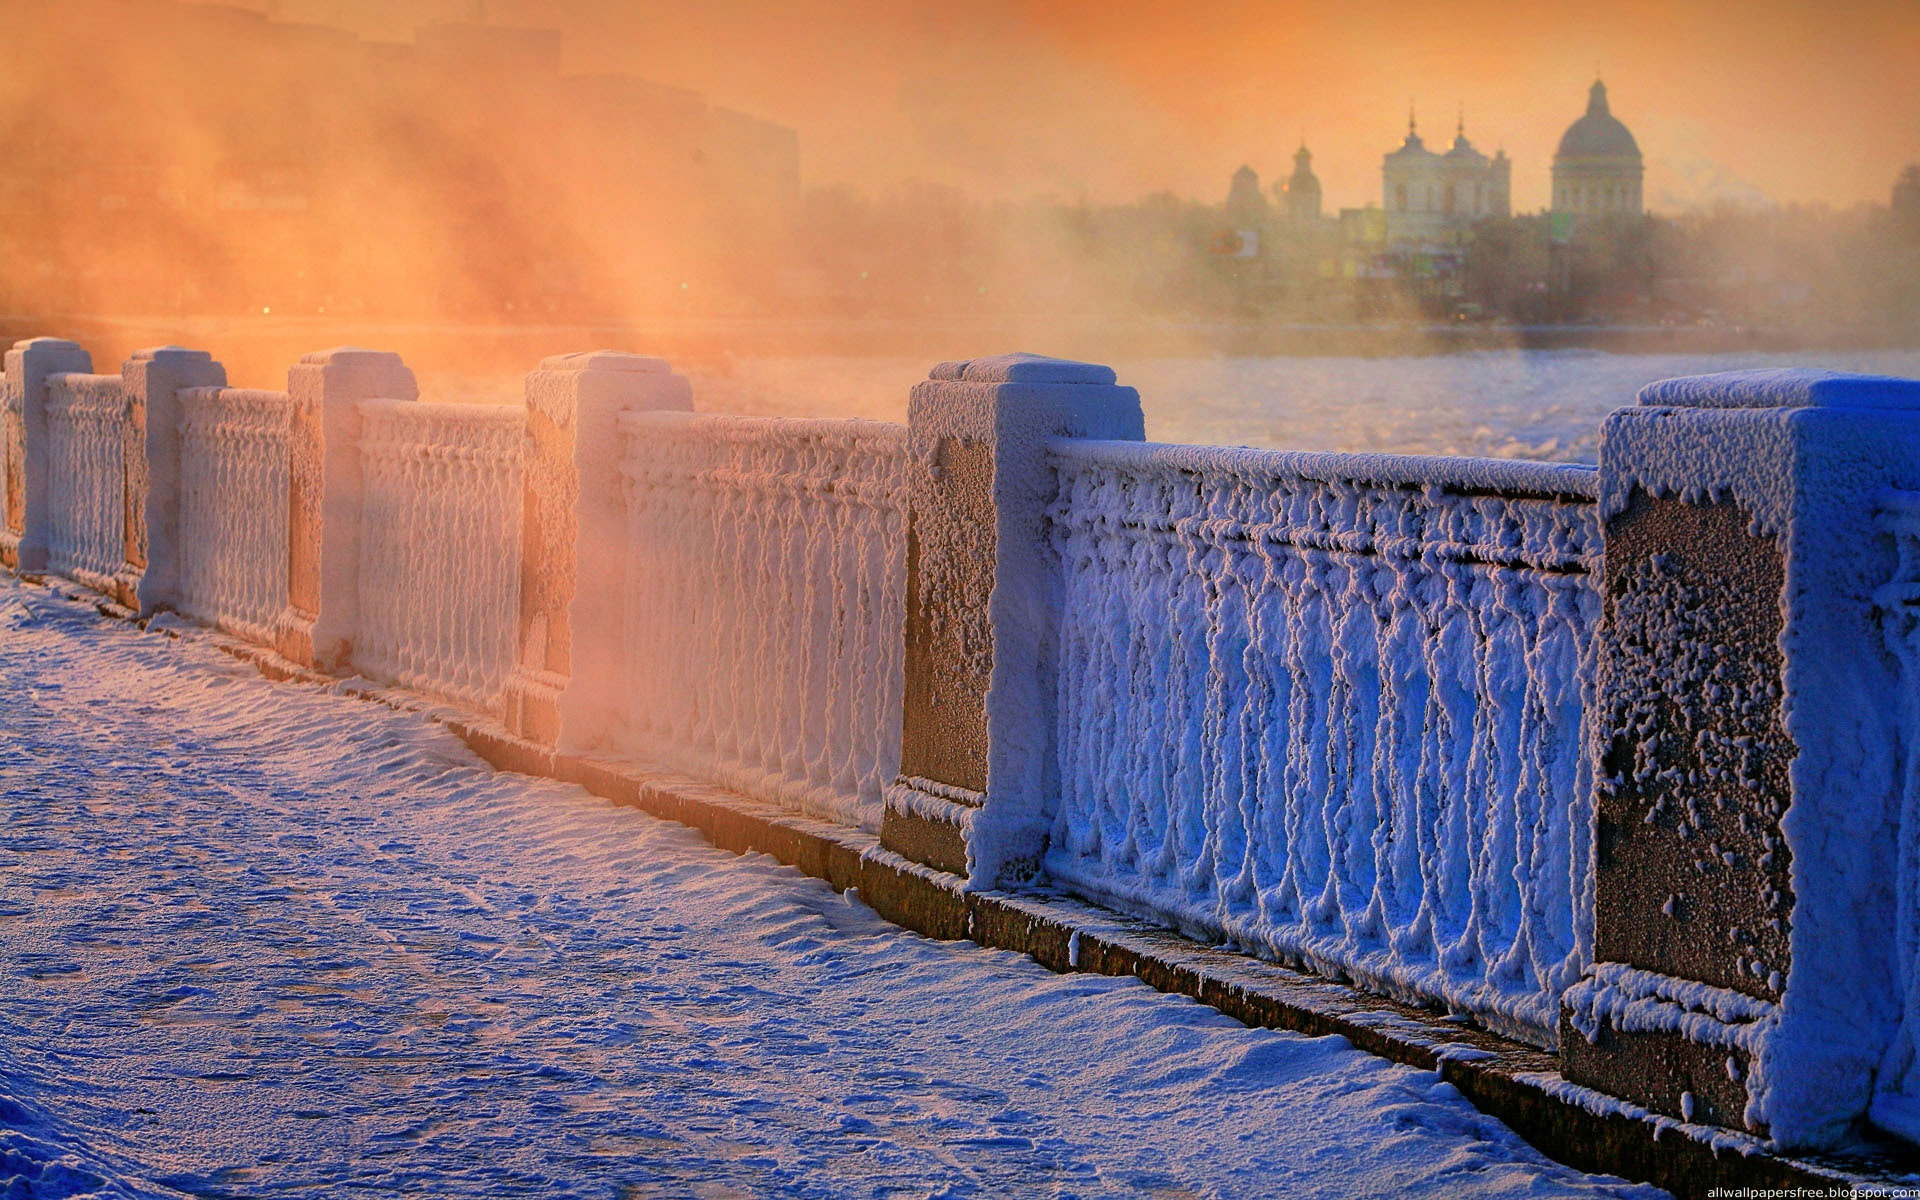 Winter_Snow_in_St._Petersburg_on_the_bridge_056670_